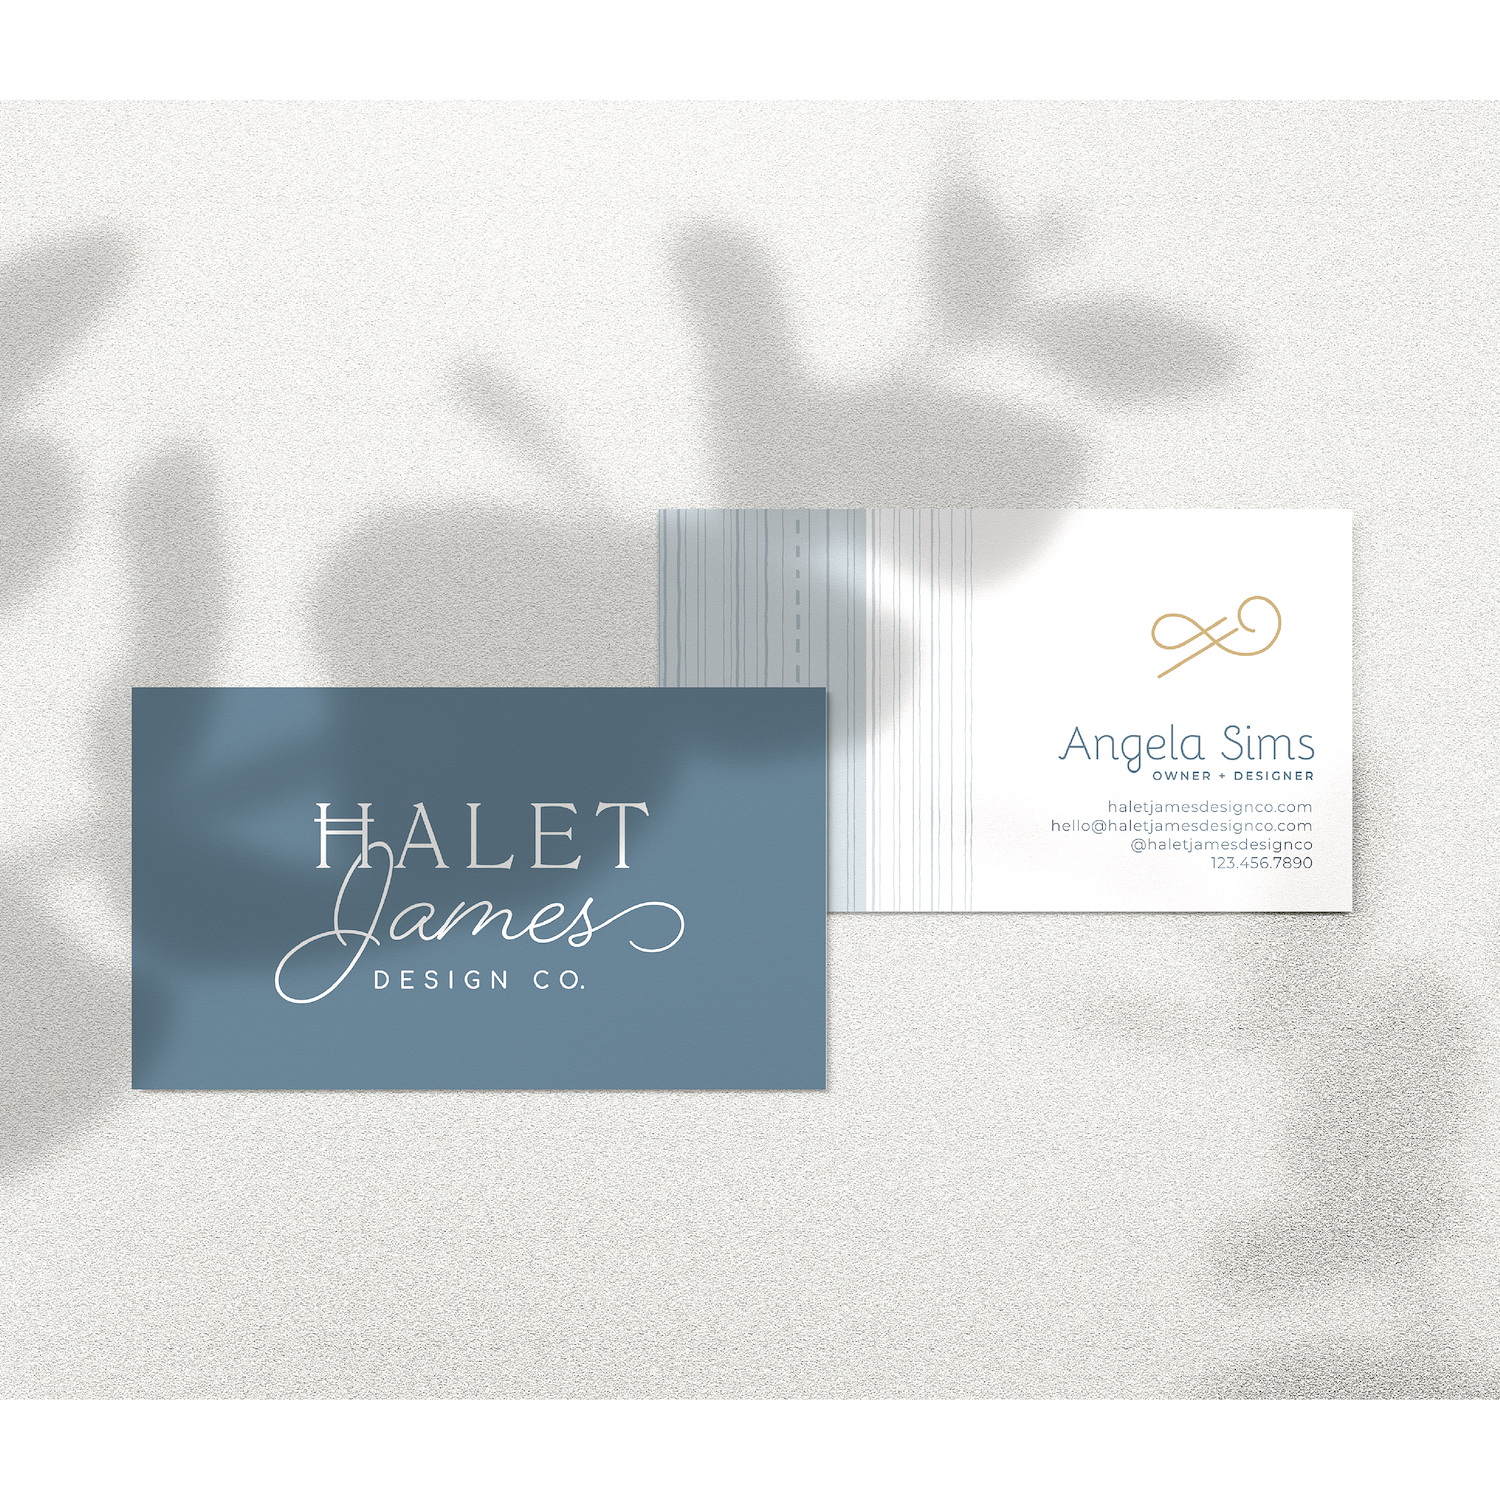 halet james design company interior design and construction builder waco texas brand and logo development by kindly by kelsea